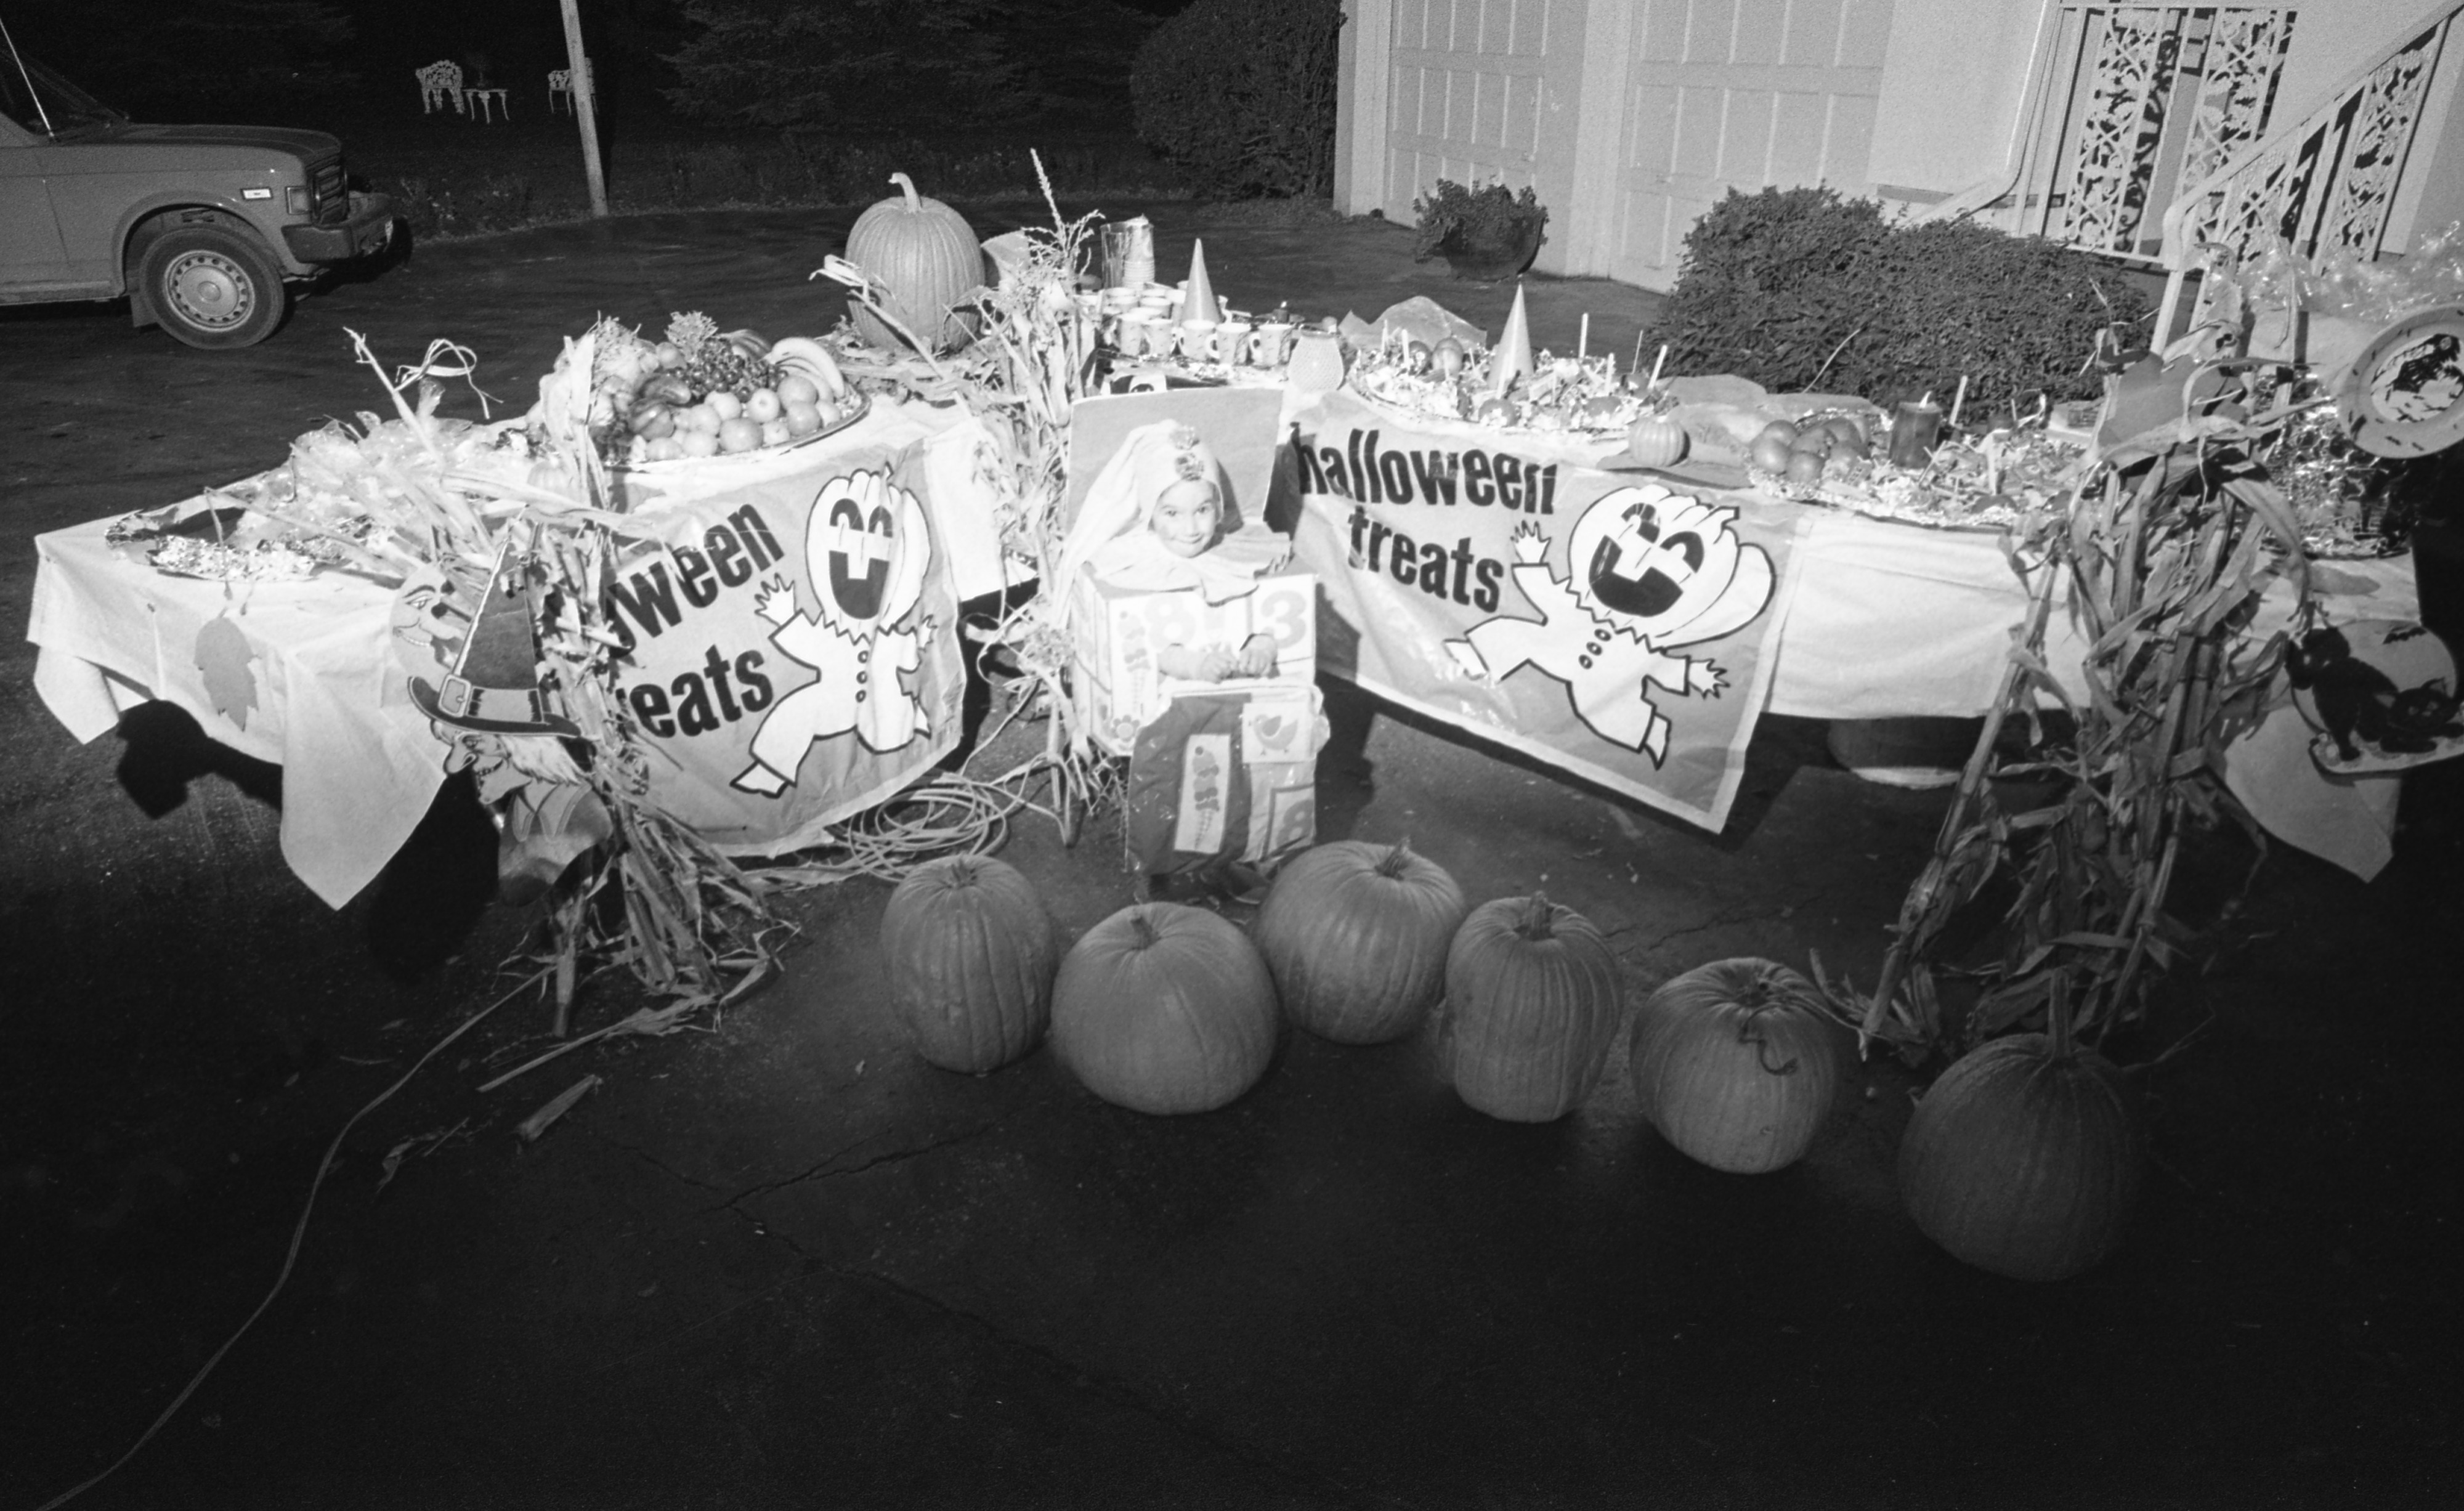 Halloween Treats Display At The Home Of Mr. & Mrs. Charles E. Miller - 4158 Washtenaw, October 1975 image